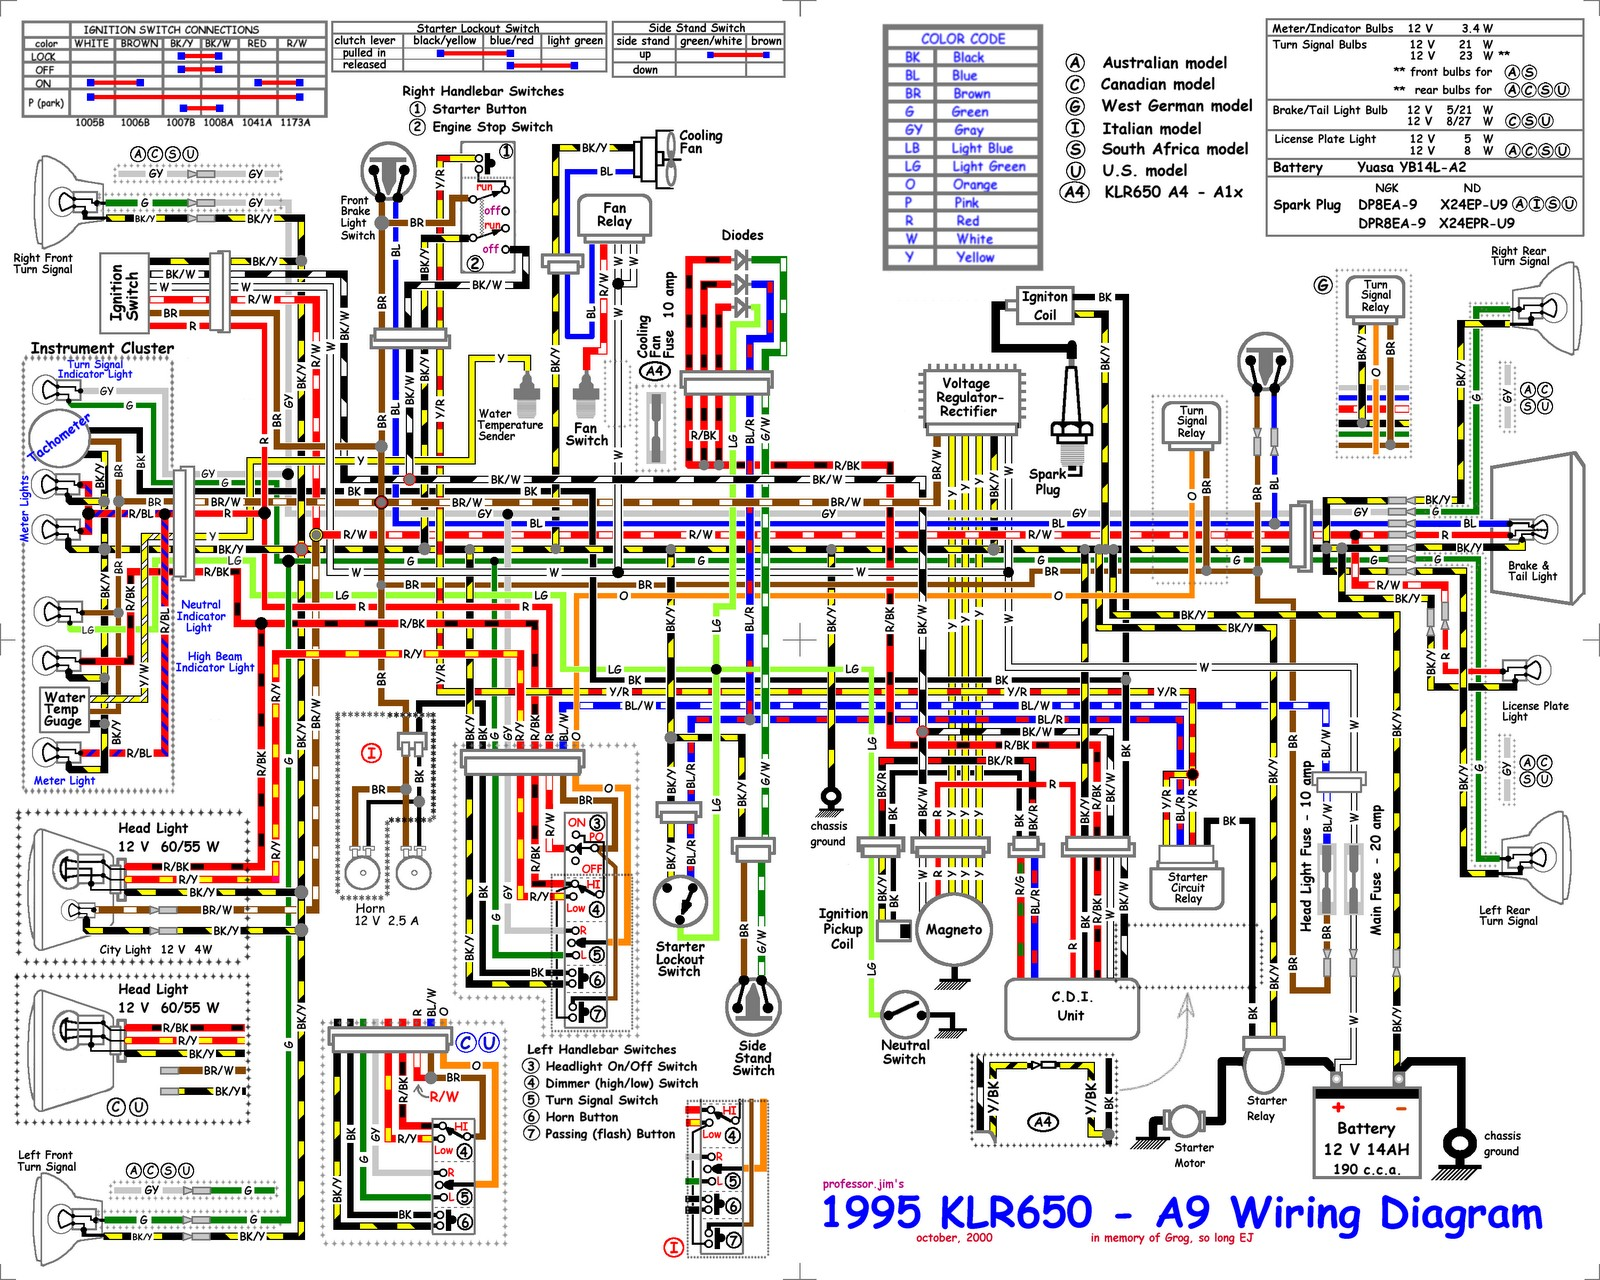 1999 ford escort wiring diagram awesome 1997 ford escort wiring rh detoxicrecenze com You Can Put a V8 in an MK1 4 Mk1